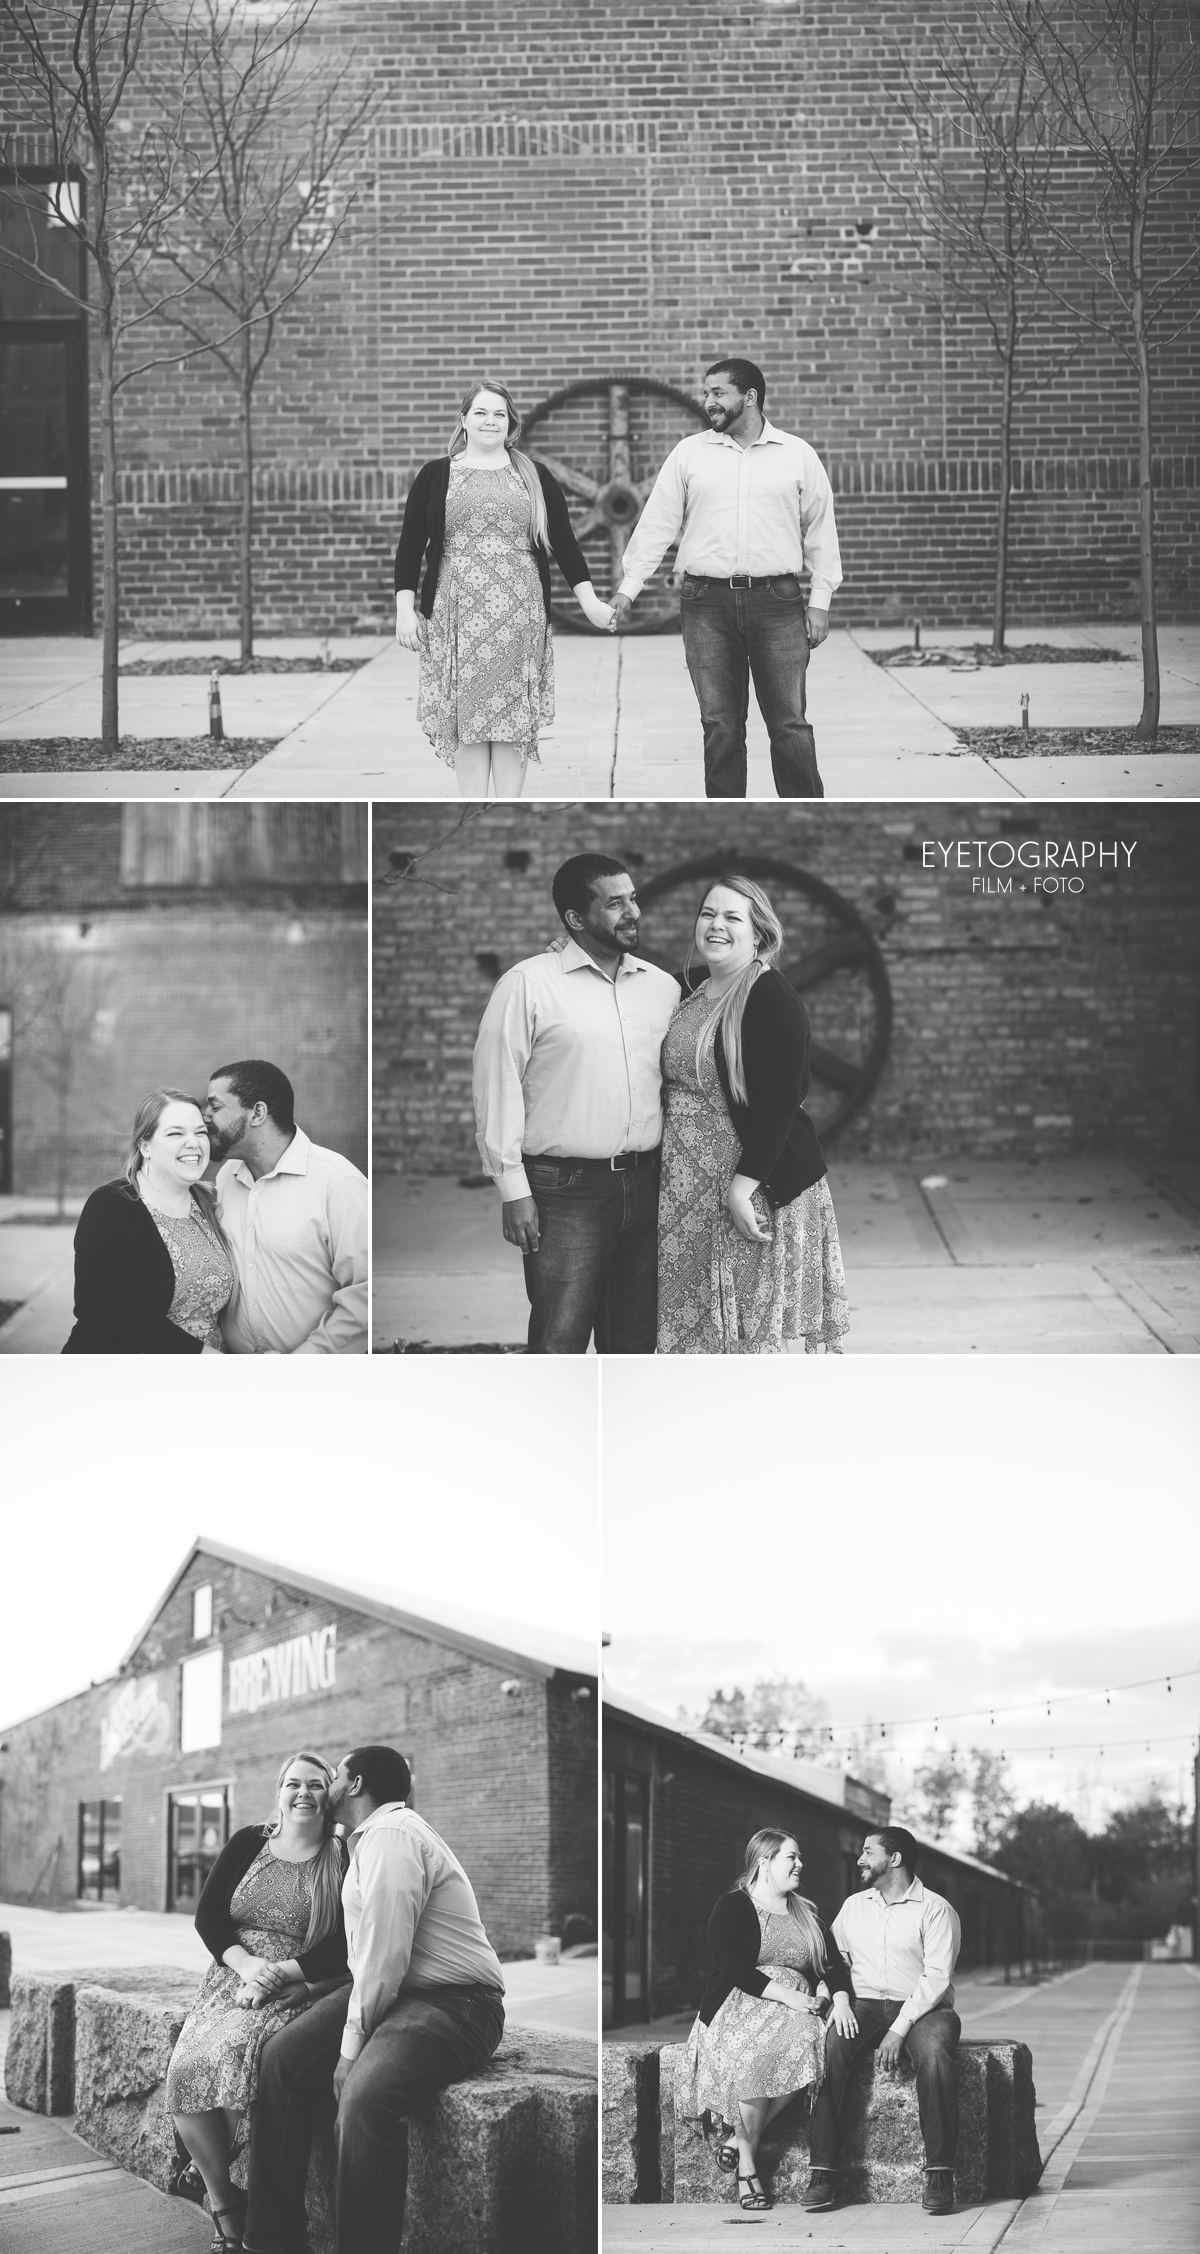 St. Paul Engagement Photography | Eyetography Film + Foto | Emily + Nate 6